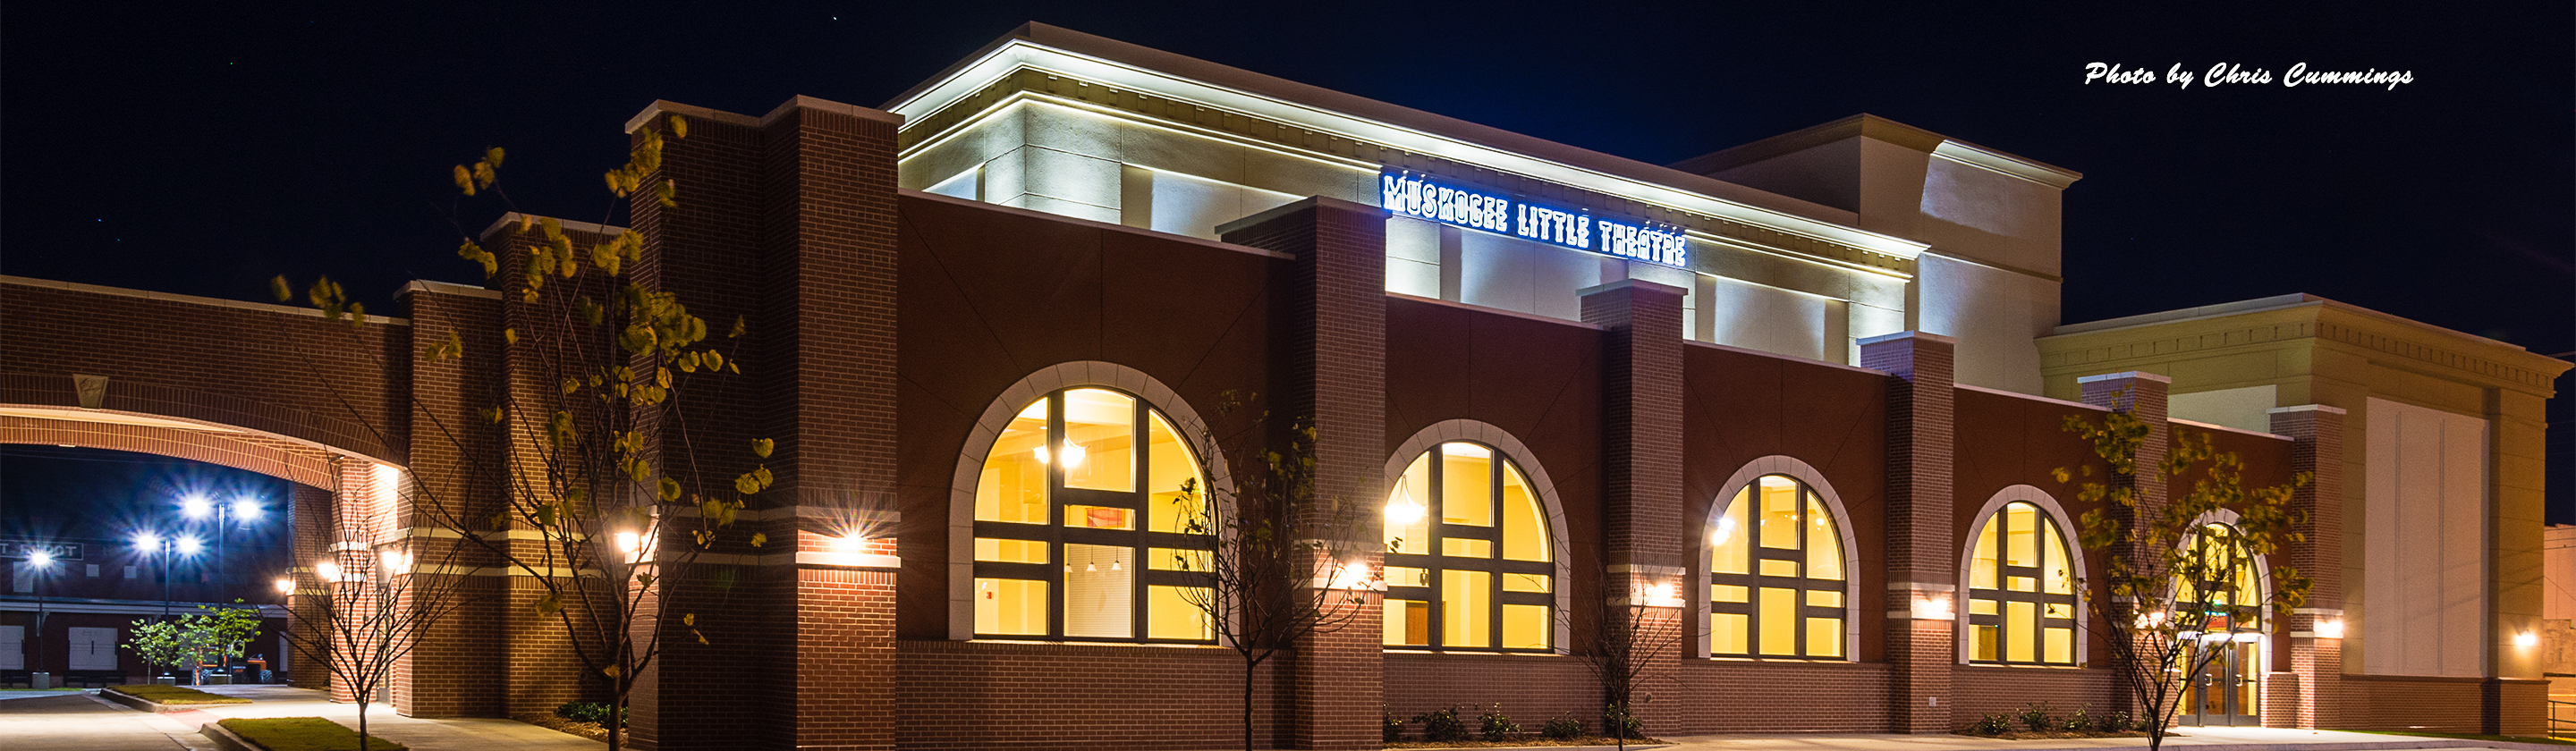 Muskogee Little Theater at Night 19x6